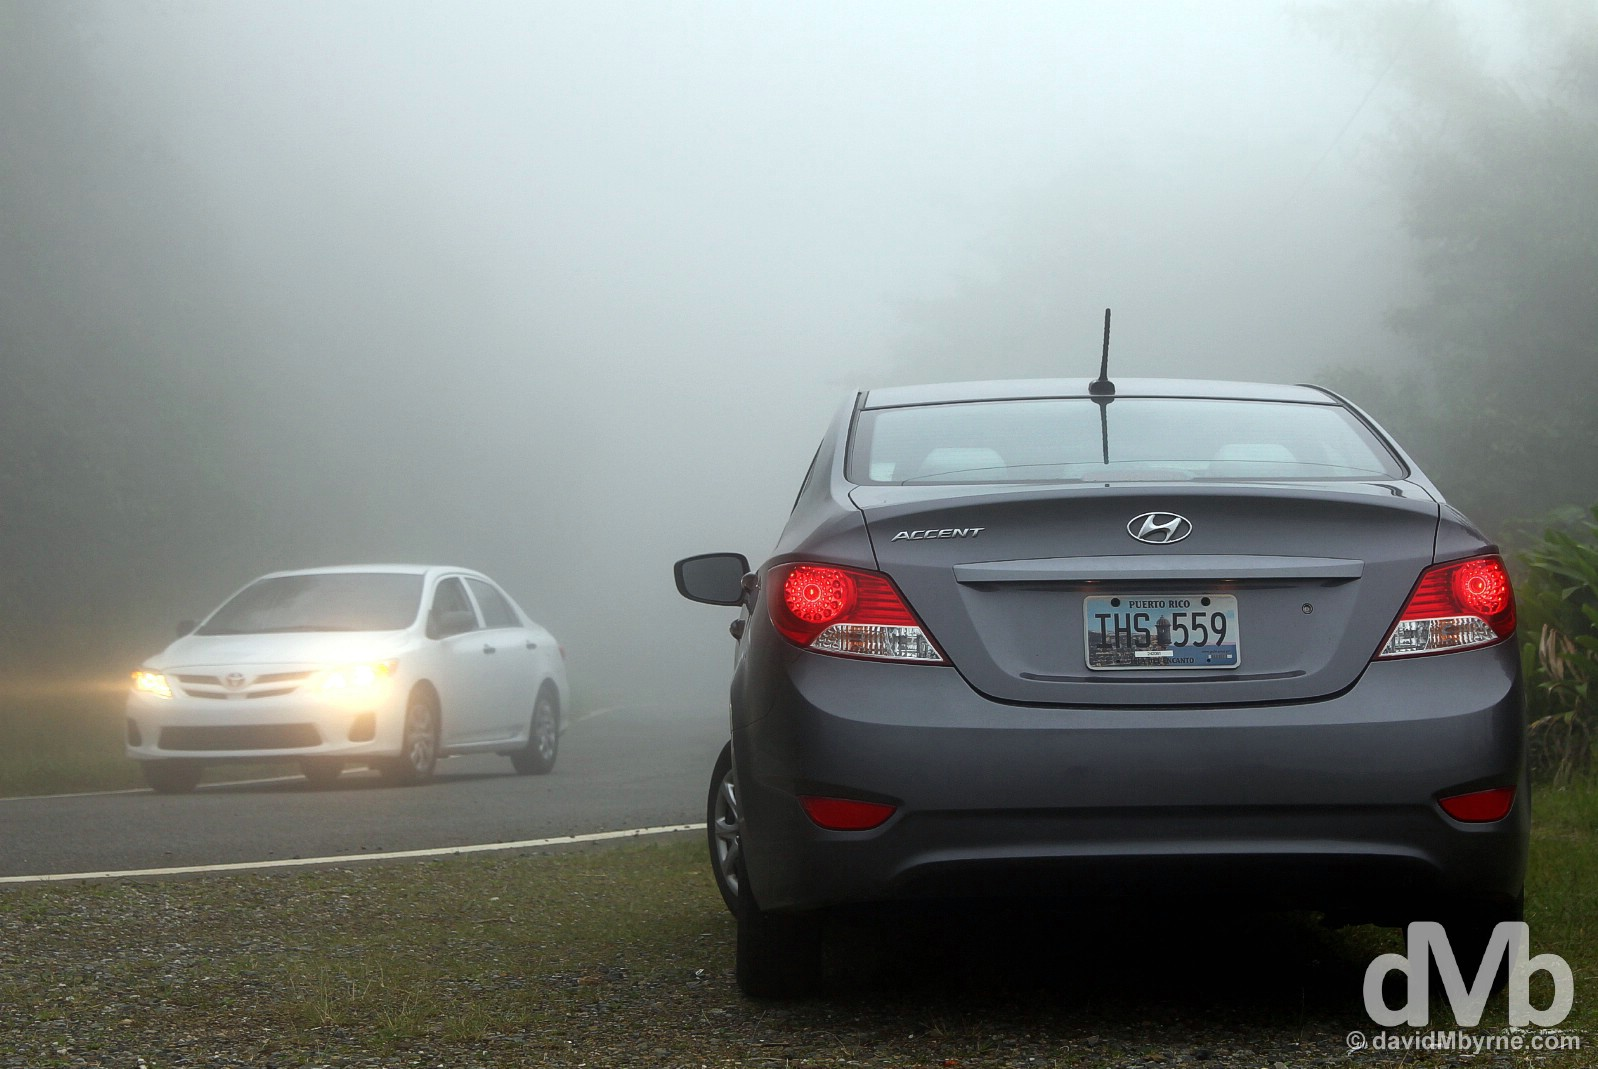 Hire car (& mist) on Ruta Panoramica, central Puerto Rico, Greater Antilles. June 4, 2015.